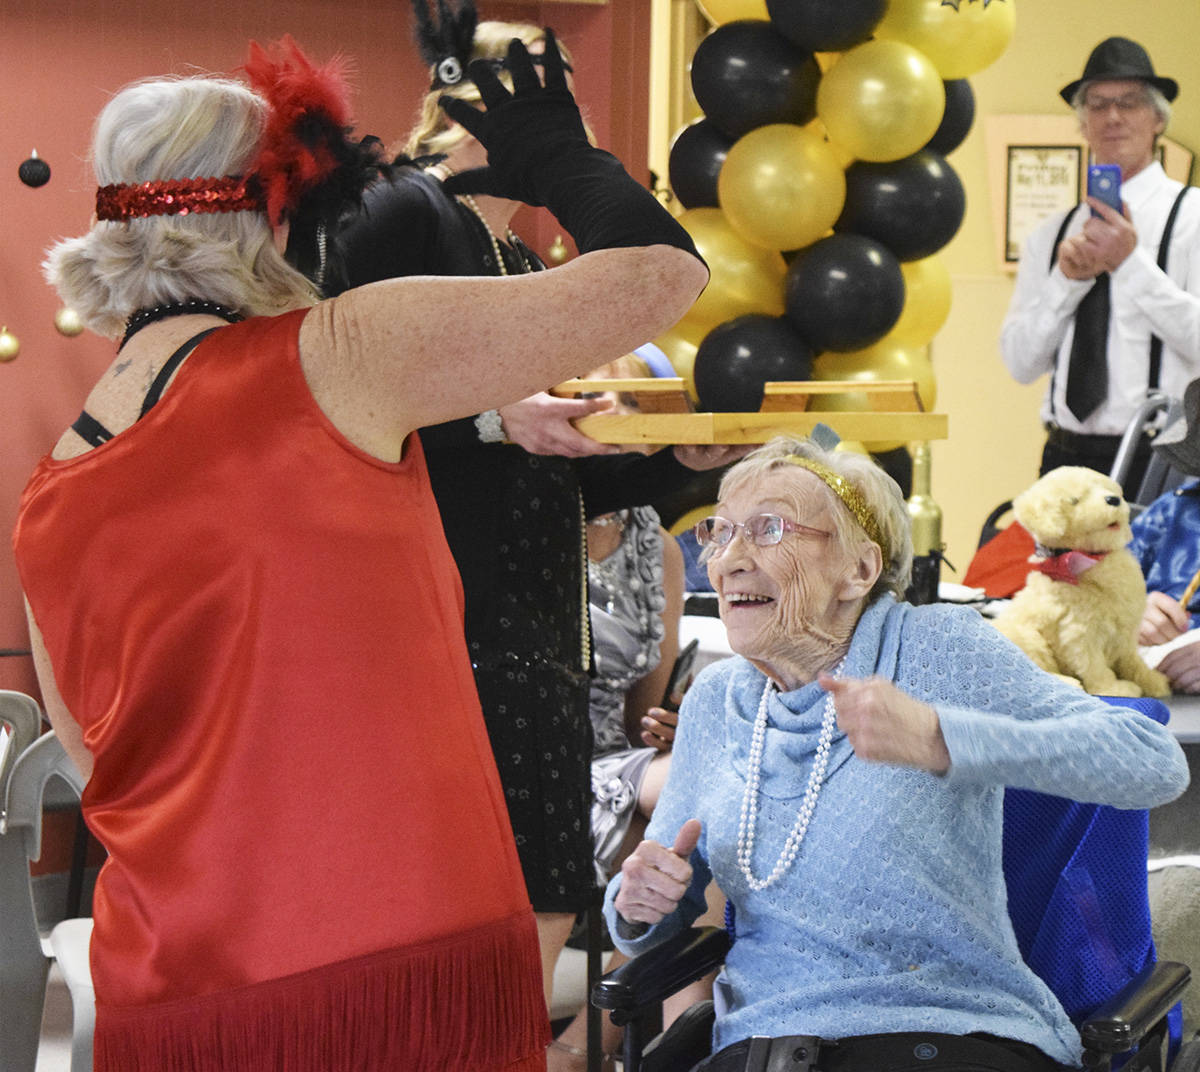 """The Pines Special Care Home in Kimberley celebrated Mother's Day this year with a roaring 20's themed party and staff had invited The Bulletin to take photos. What a special event. It was so lovely to be a part of this day and to see all of the people who are in special care dancing and having so much fun. I put a smile on my face for the rest of the day. Between the costumes, music, photo booth and 'mocktails' it truly felt like you had stepped back in time when walking through the doors of the cafeteria."" (Corey Bullock/Kimberley Bulletin)"